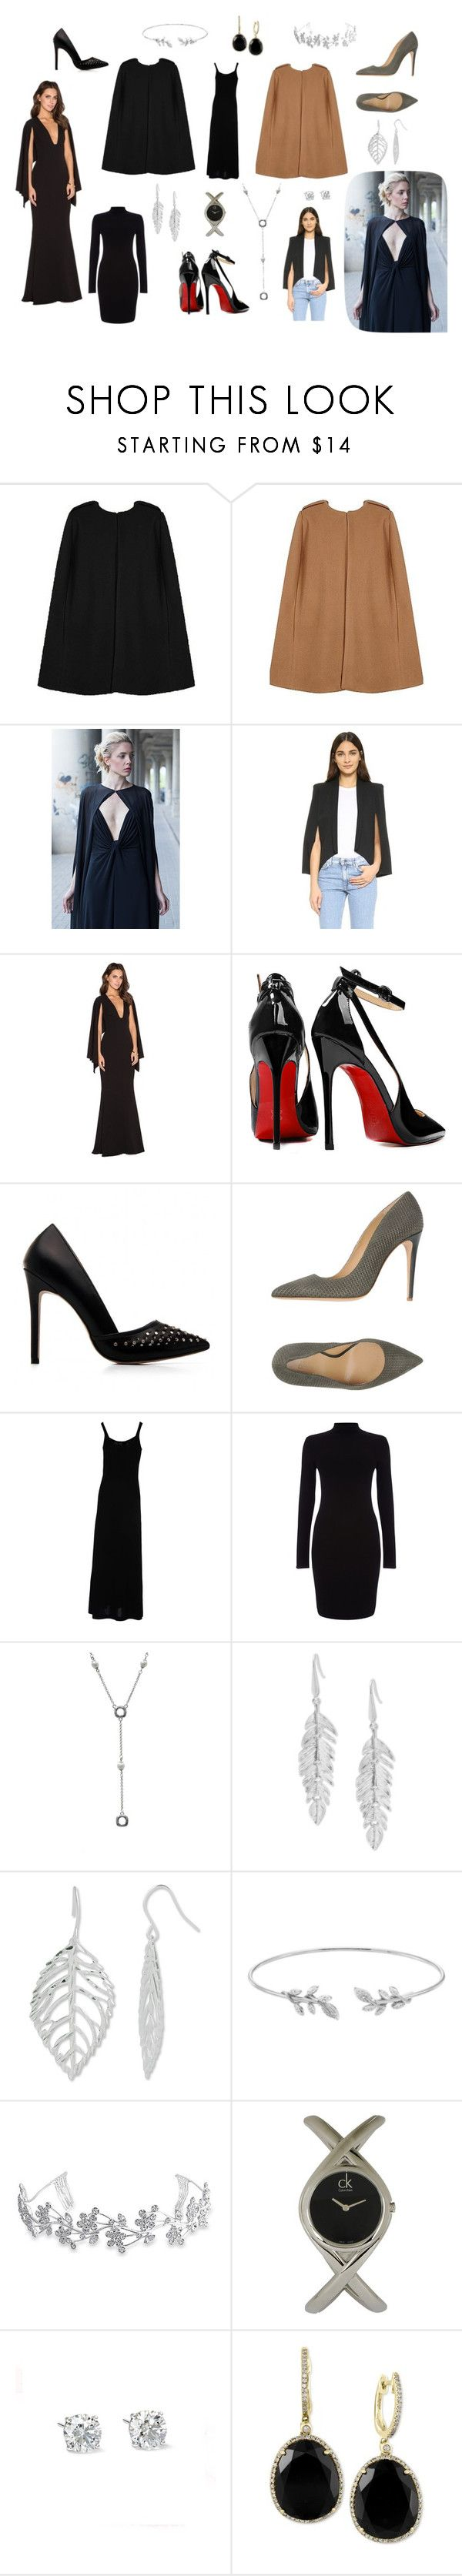 """Capes"" by giselle-suarez on Polyvore featuring James Jeans, Posh Girl, Armani Collezioni, Etro, Phase Eight, Tiffany & Co., Steve Madden, Bling Jewelry, ck Calvin Klein and Effy Jewelry"